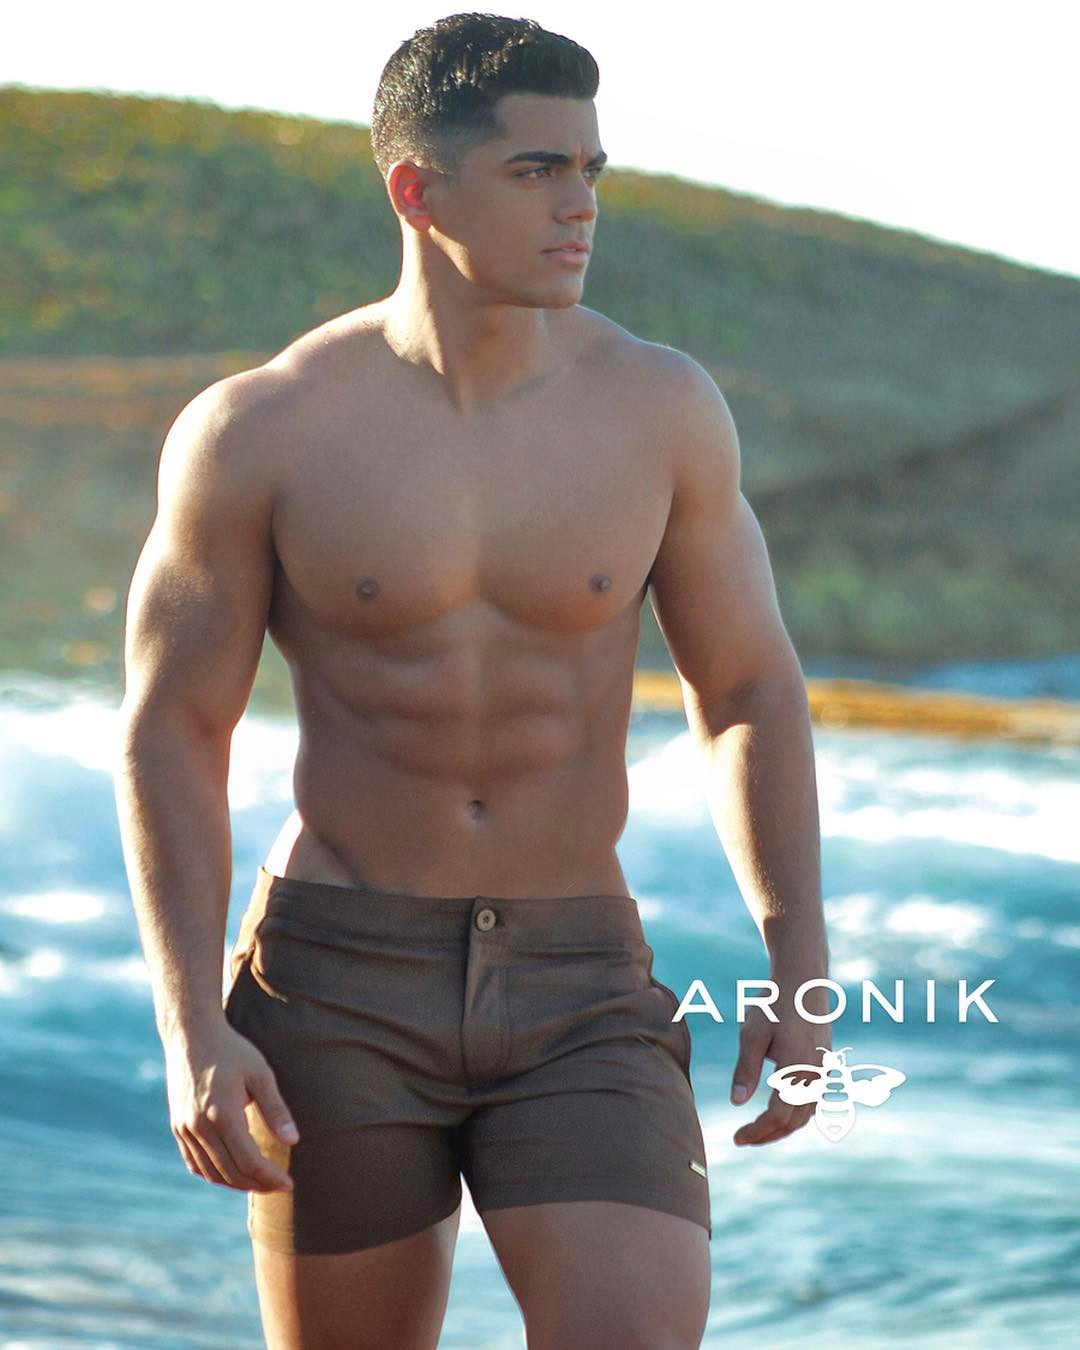 New Aronik 2017 by Edwin Lebron